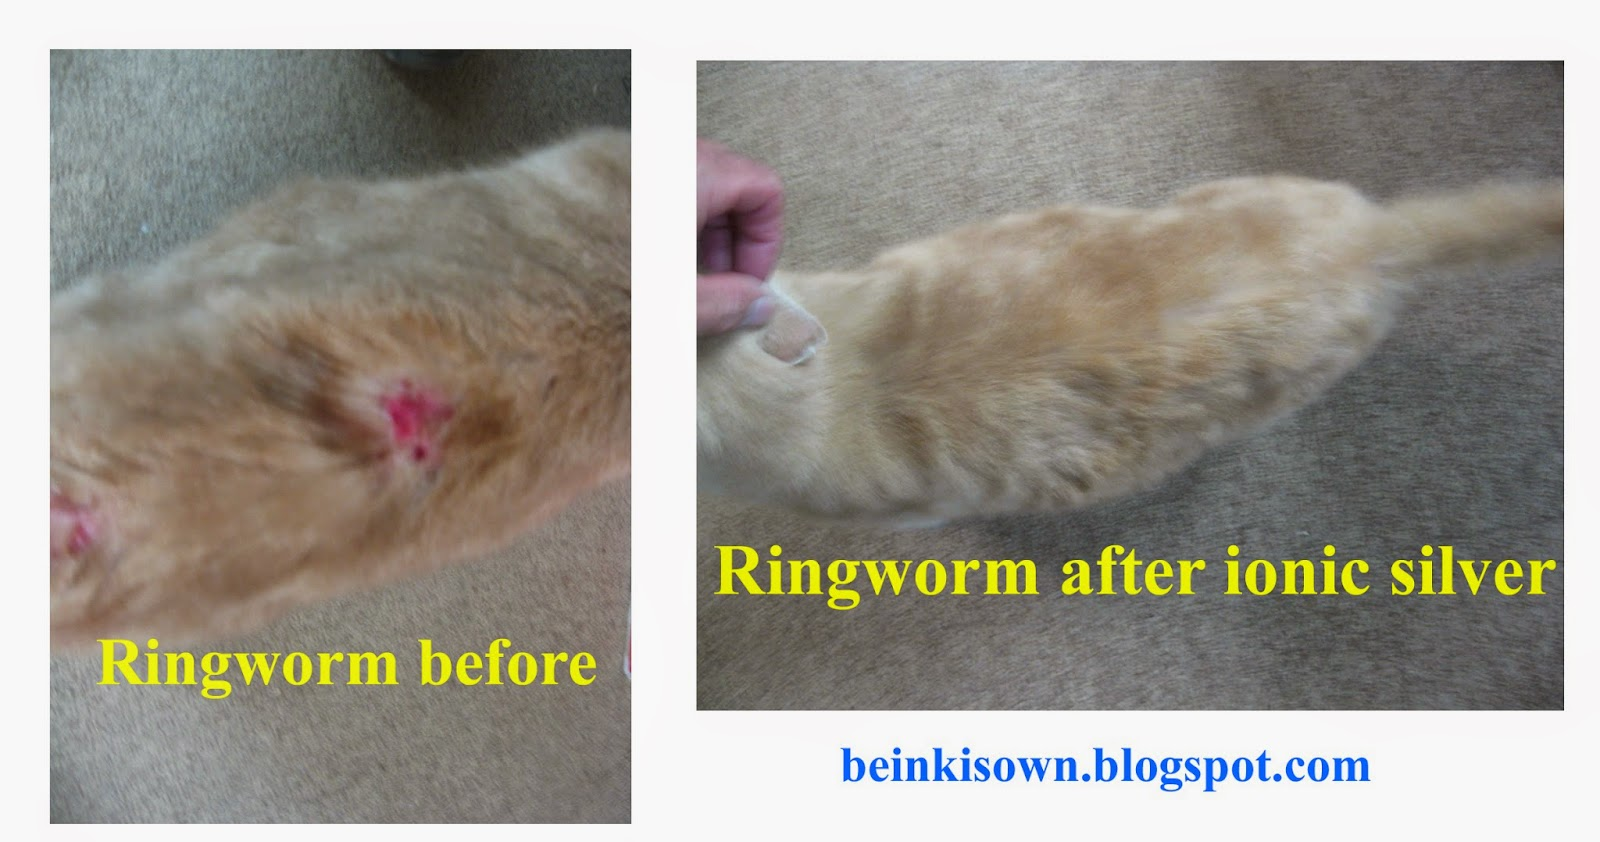 Beinki's Own Colloidal Silver: Colloidal Silver stops ringworm in cat